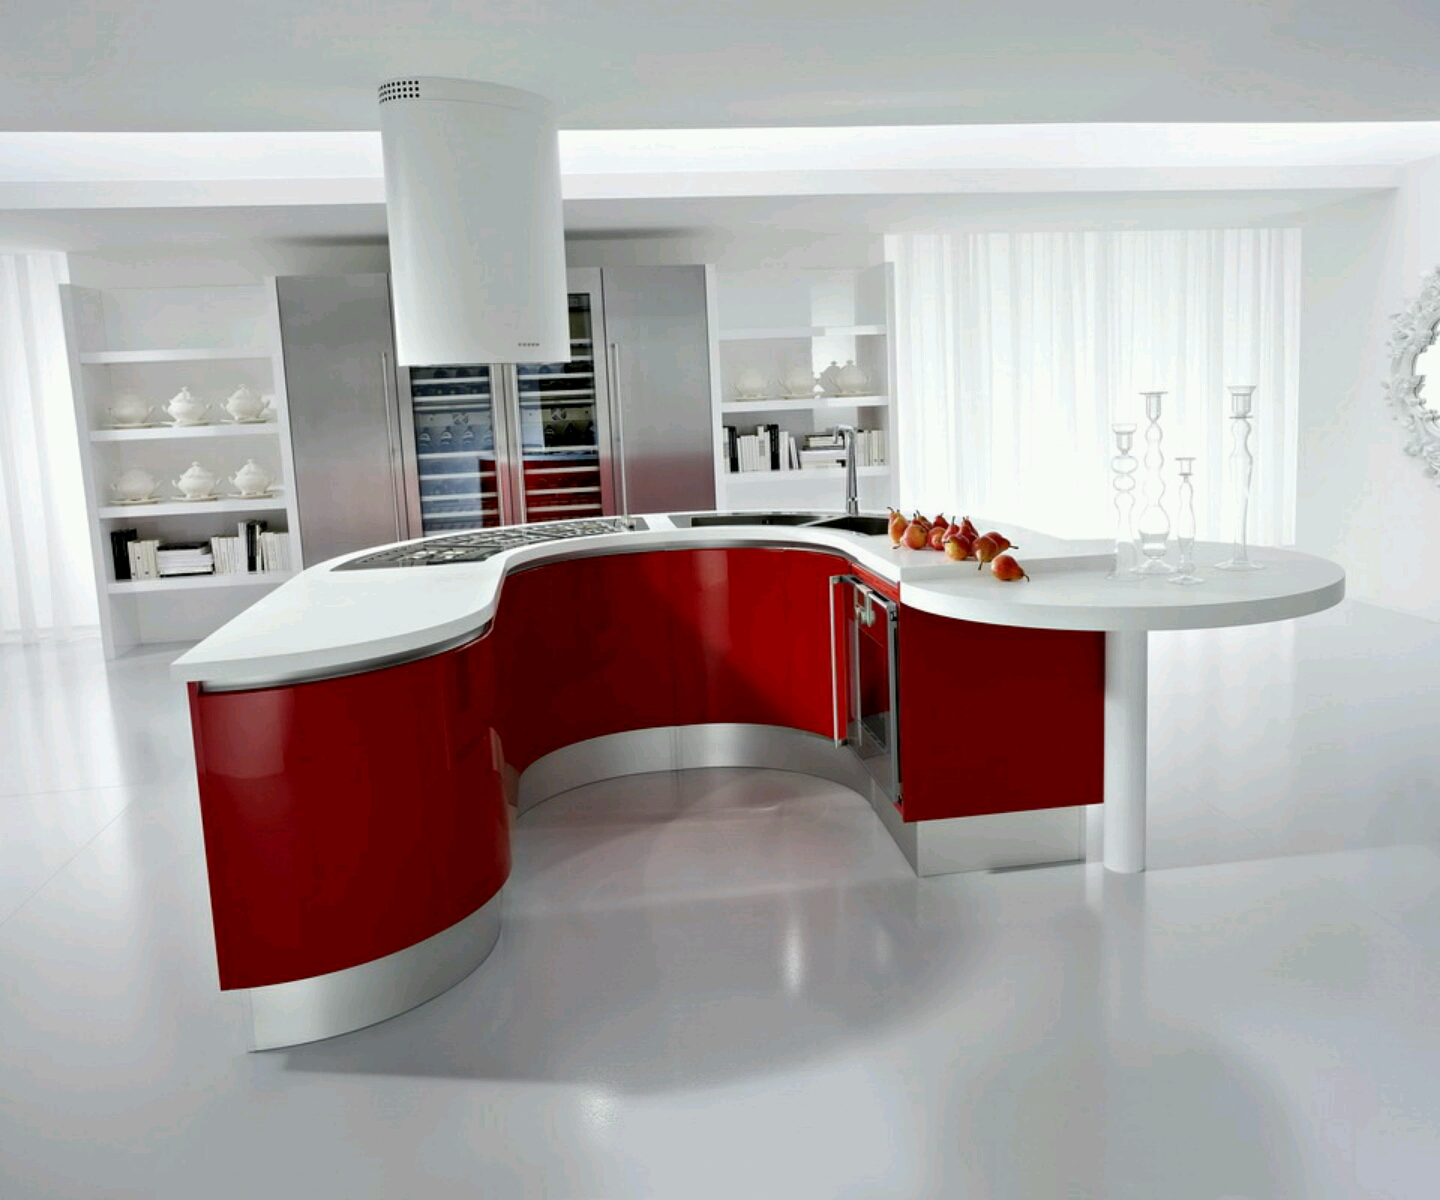 Modern kitchen cabinets designs ideas furniture gallery for Kitchen designs cabinets